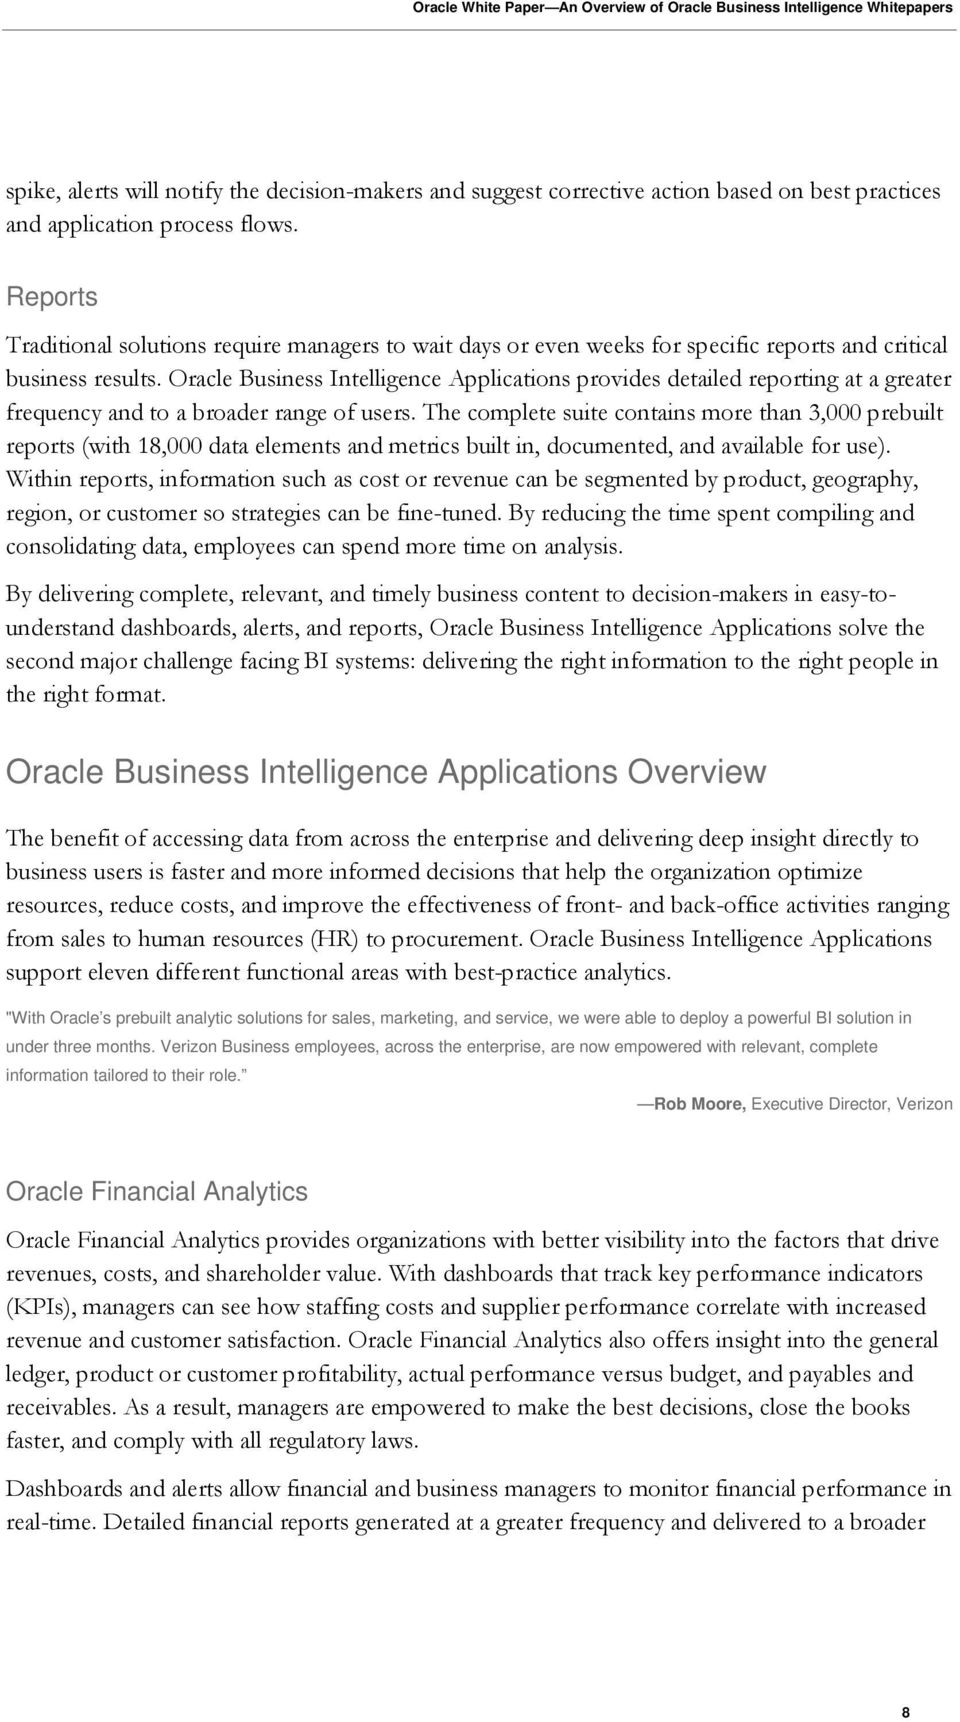 Oracle Business Intelligence Applications provides detailed reporting at a greater frequency and to a broader range of users.